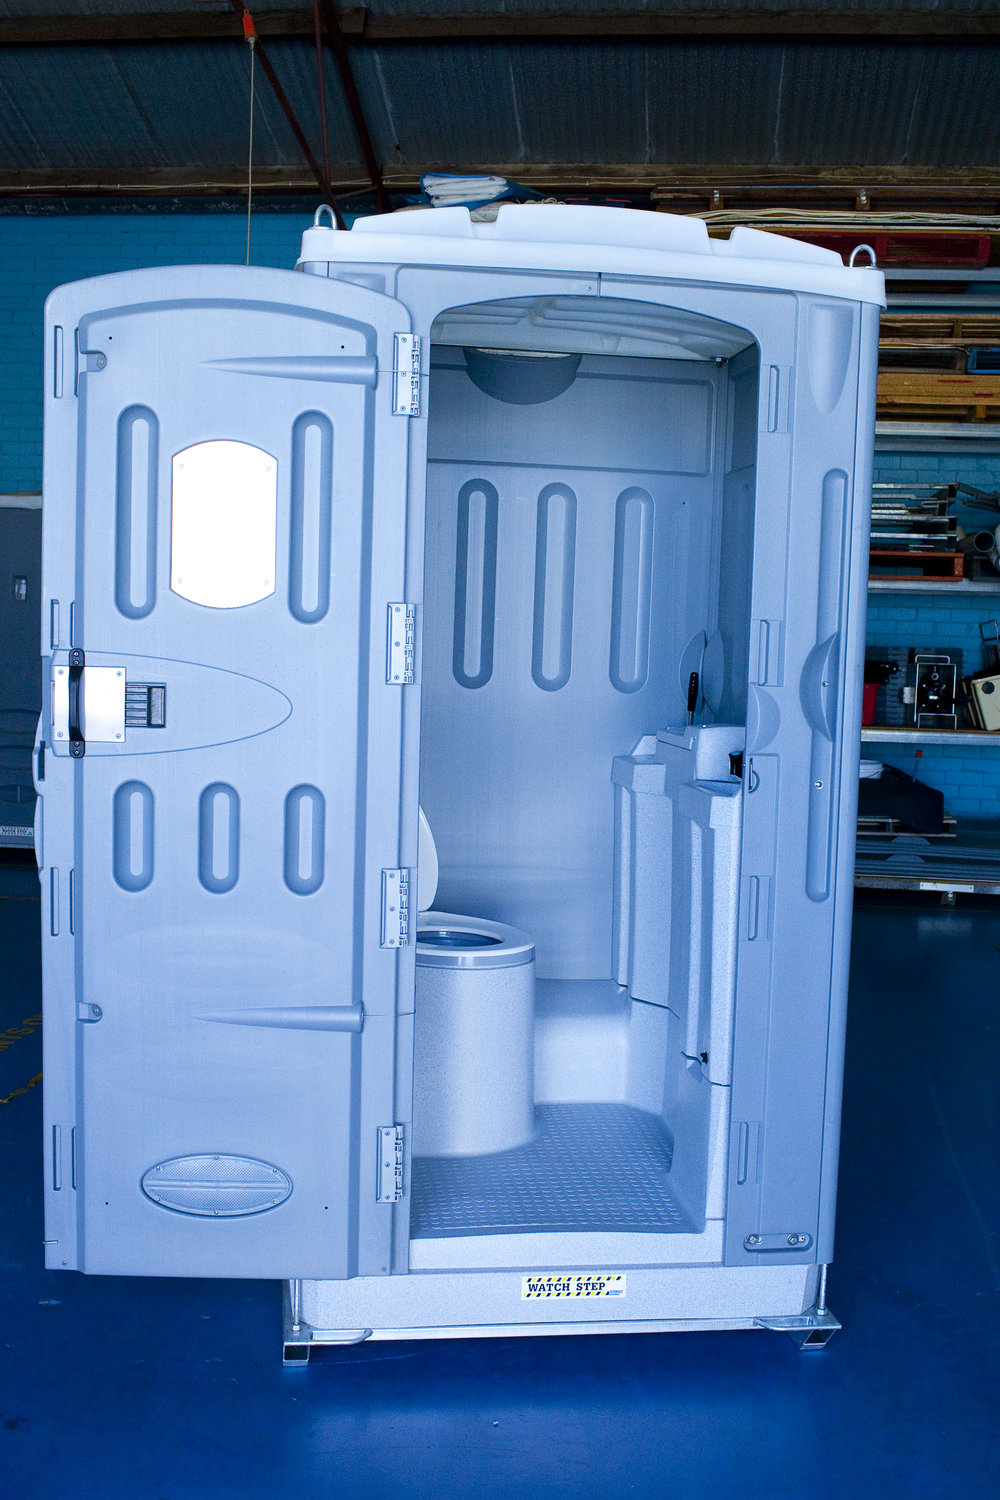 Inside Portable Toilet.jpg